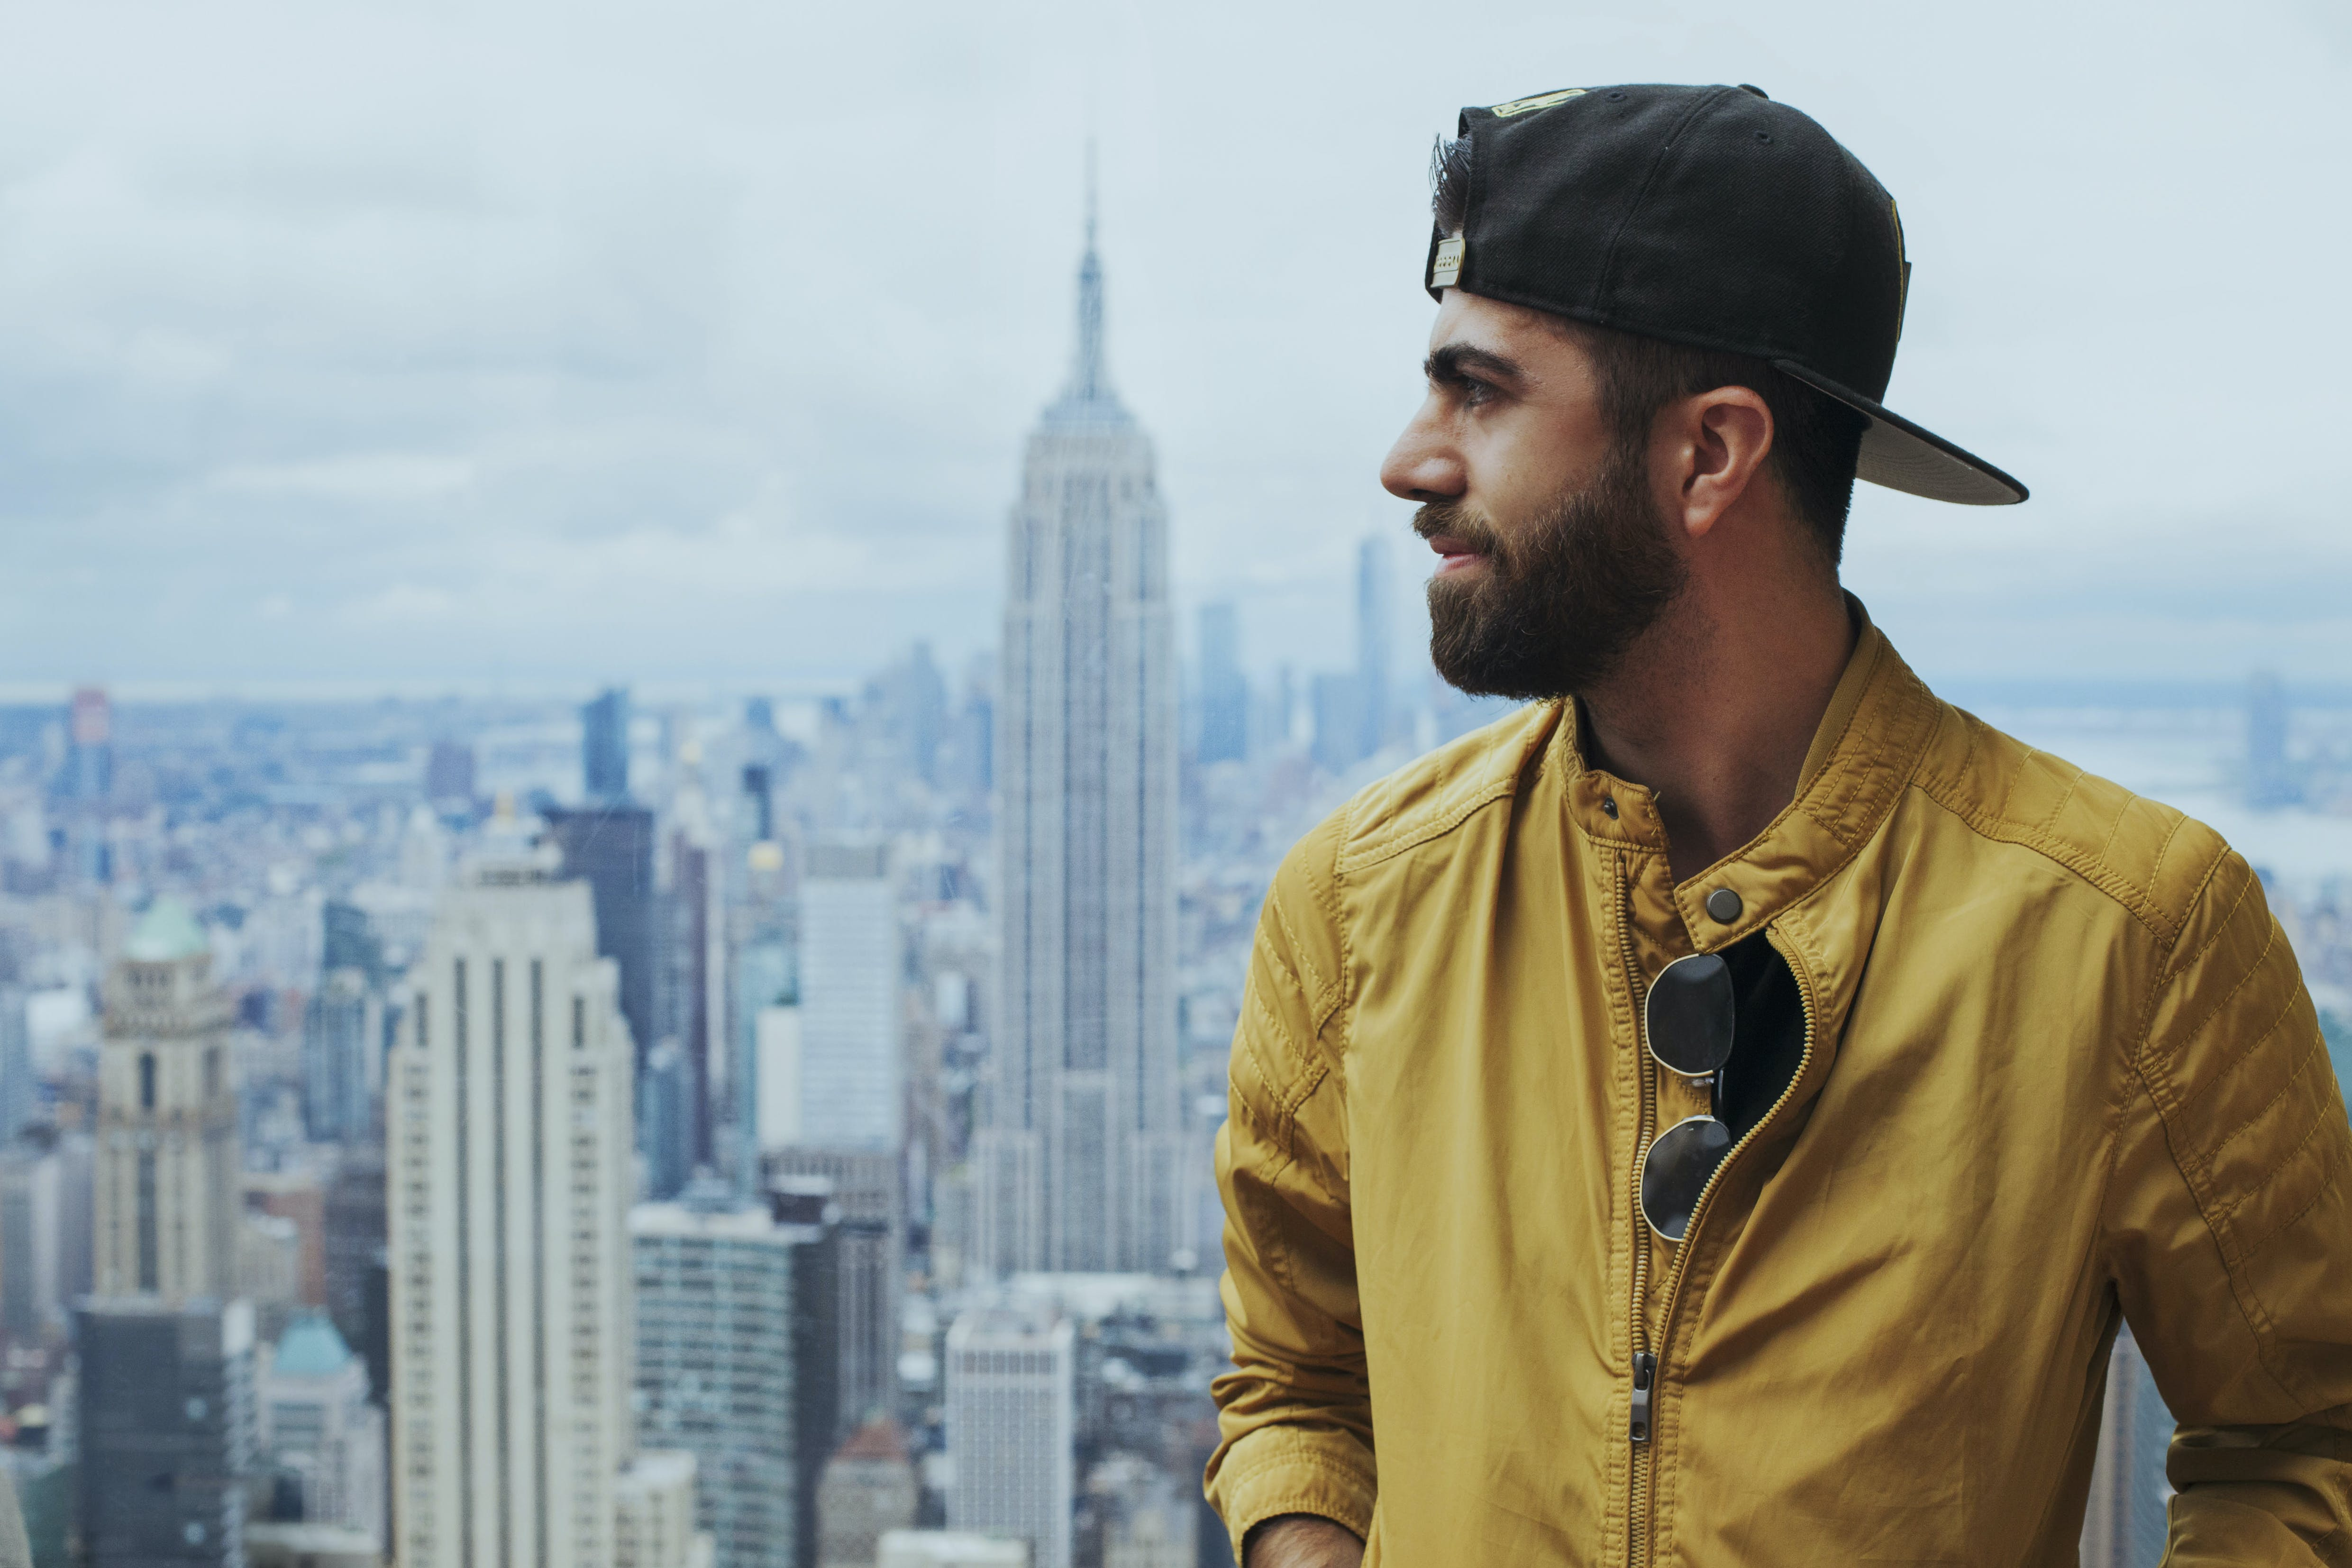 Portrait Photo of Man in Yellow Zip-up Jacket Near Empire State Building